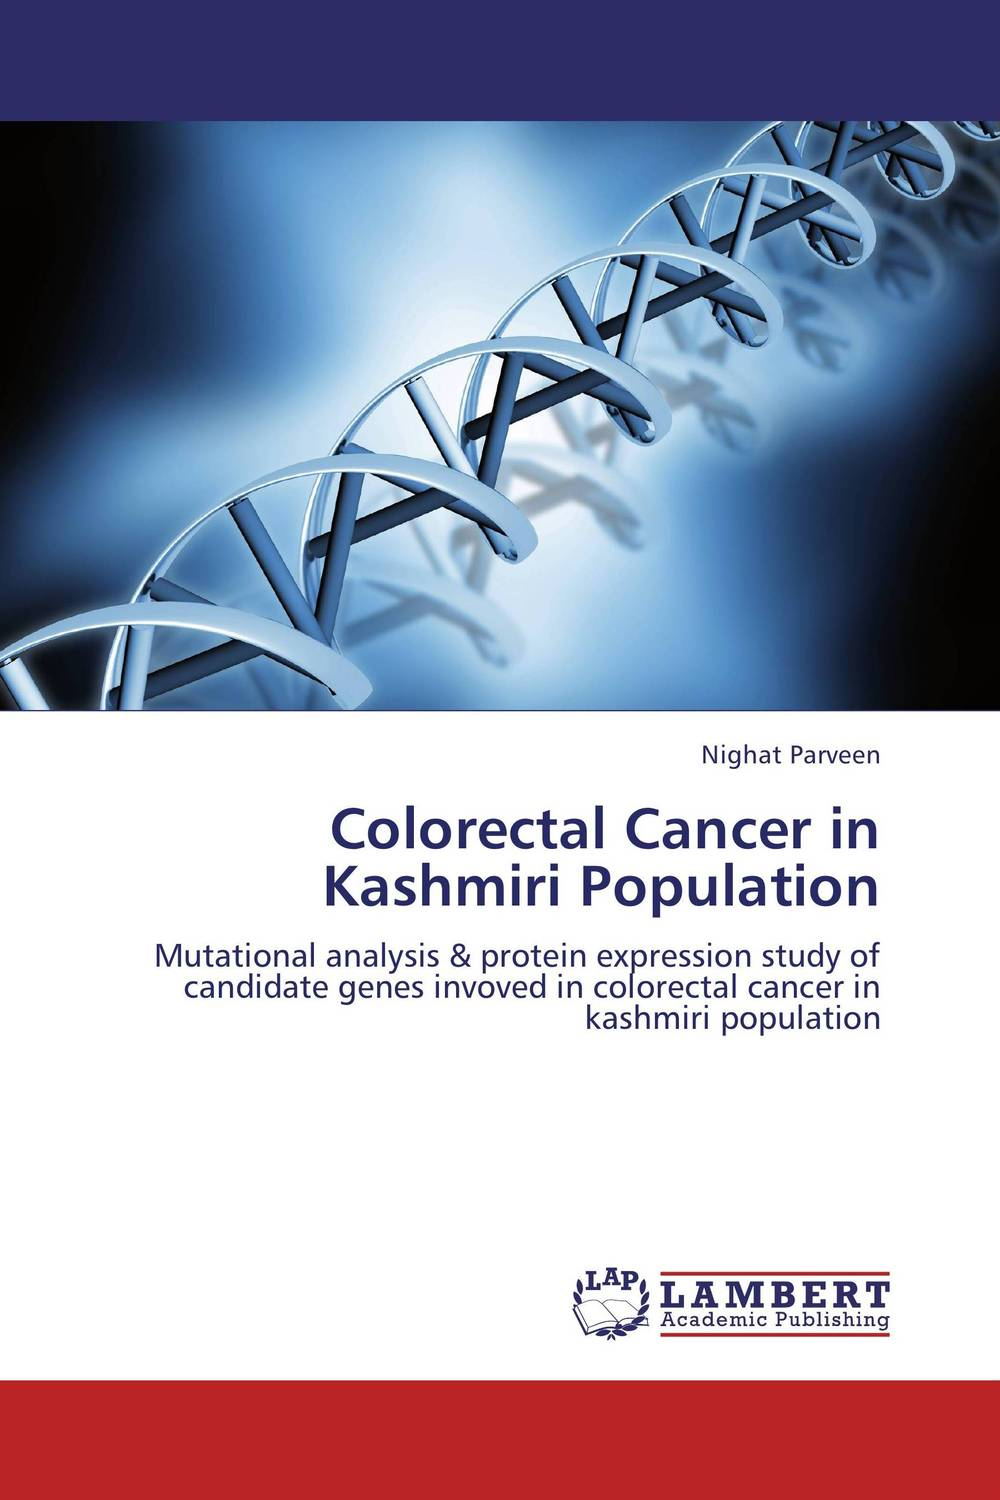 Colorectal Cancer in Kashmiri Population arvinder pal singh batra jeewandeep kaur and anil kumar pandey factors associated with breast cancer in amritsar region